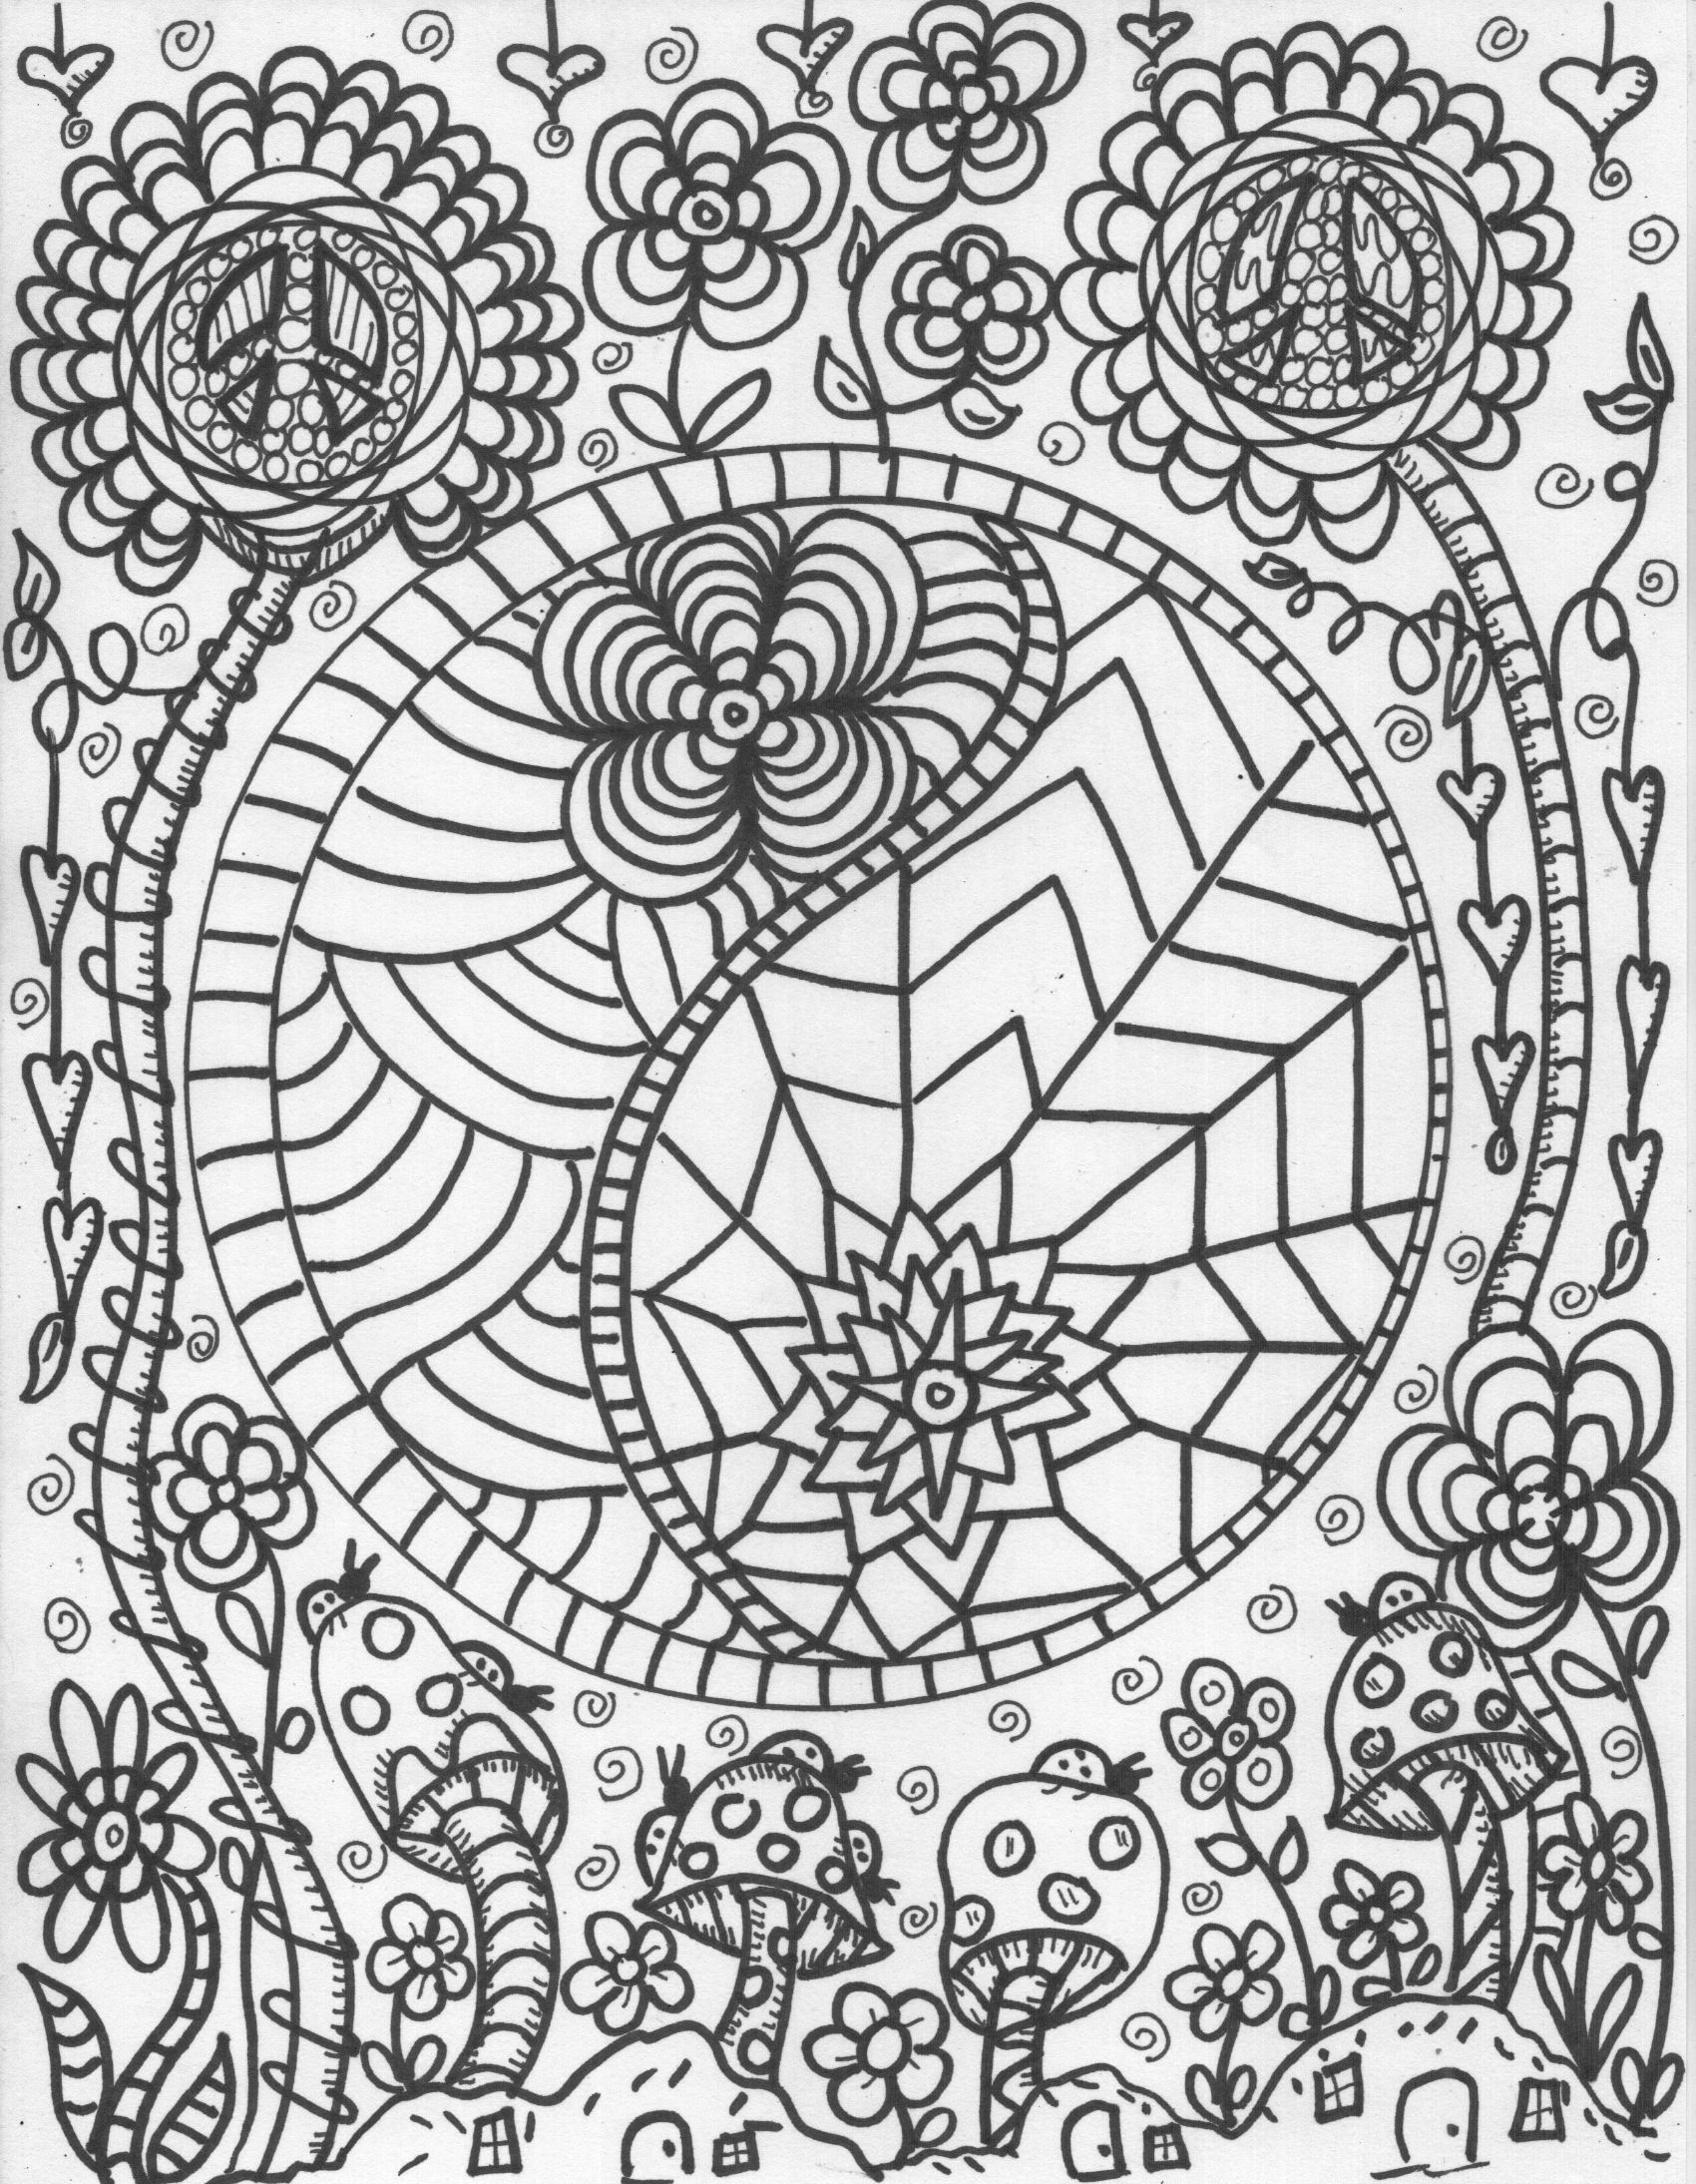 Abstract flower coloring pages - Abstract Doodle Zentangle Coloring Pages Colouring Adult Detailed Advanced Printable Kleuren Voor Volwassenen Coloriage Pour Adulte